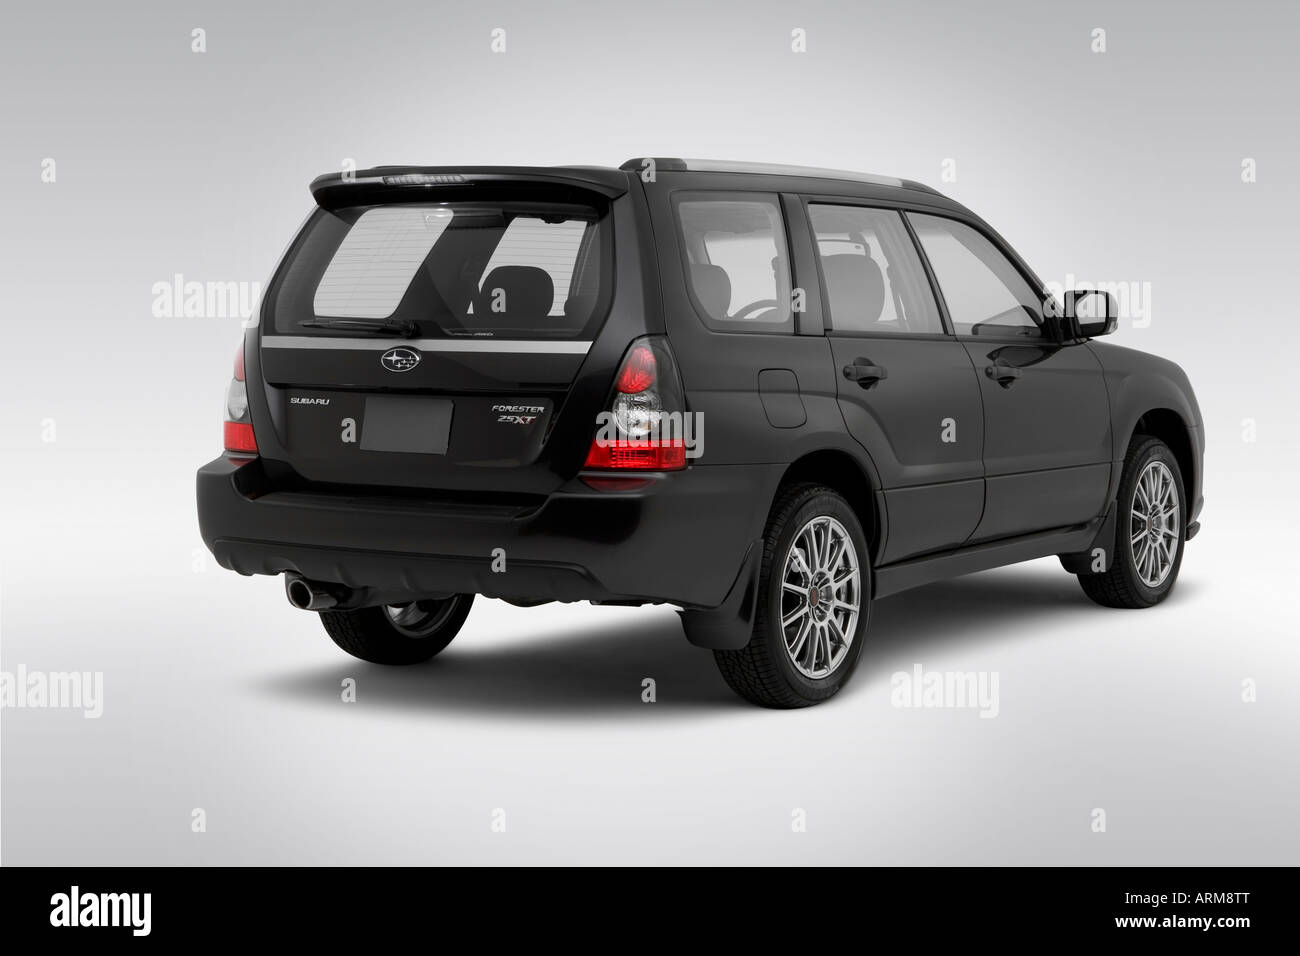 2008 subaru forester sports 25 xt in gray rear angle view stock 2008 subaru forester sports 25 xt in gray rear angle view vanachro Images